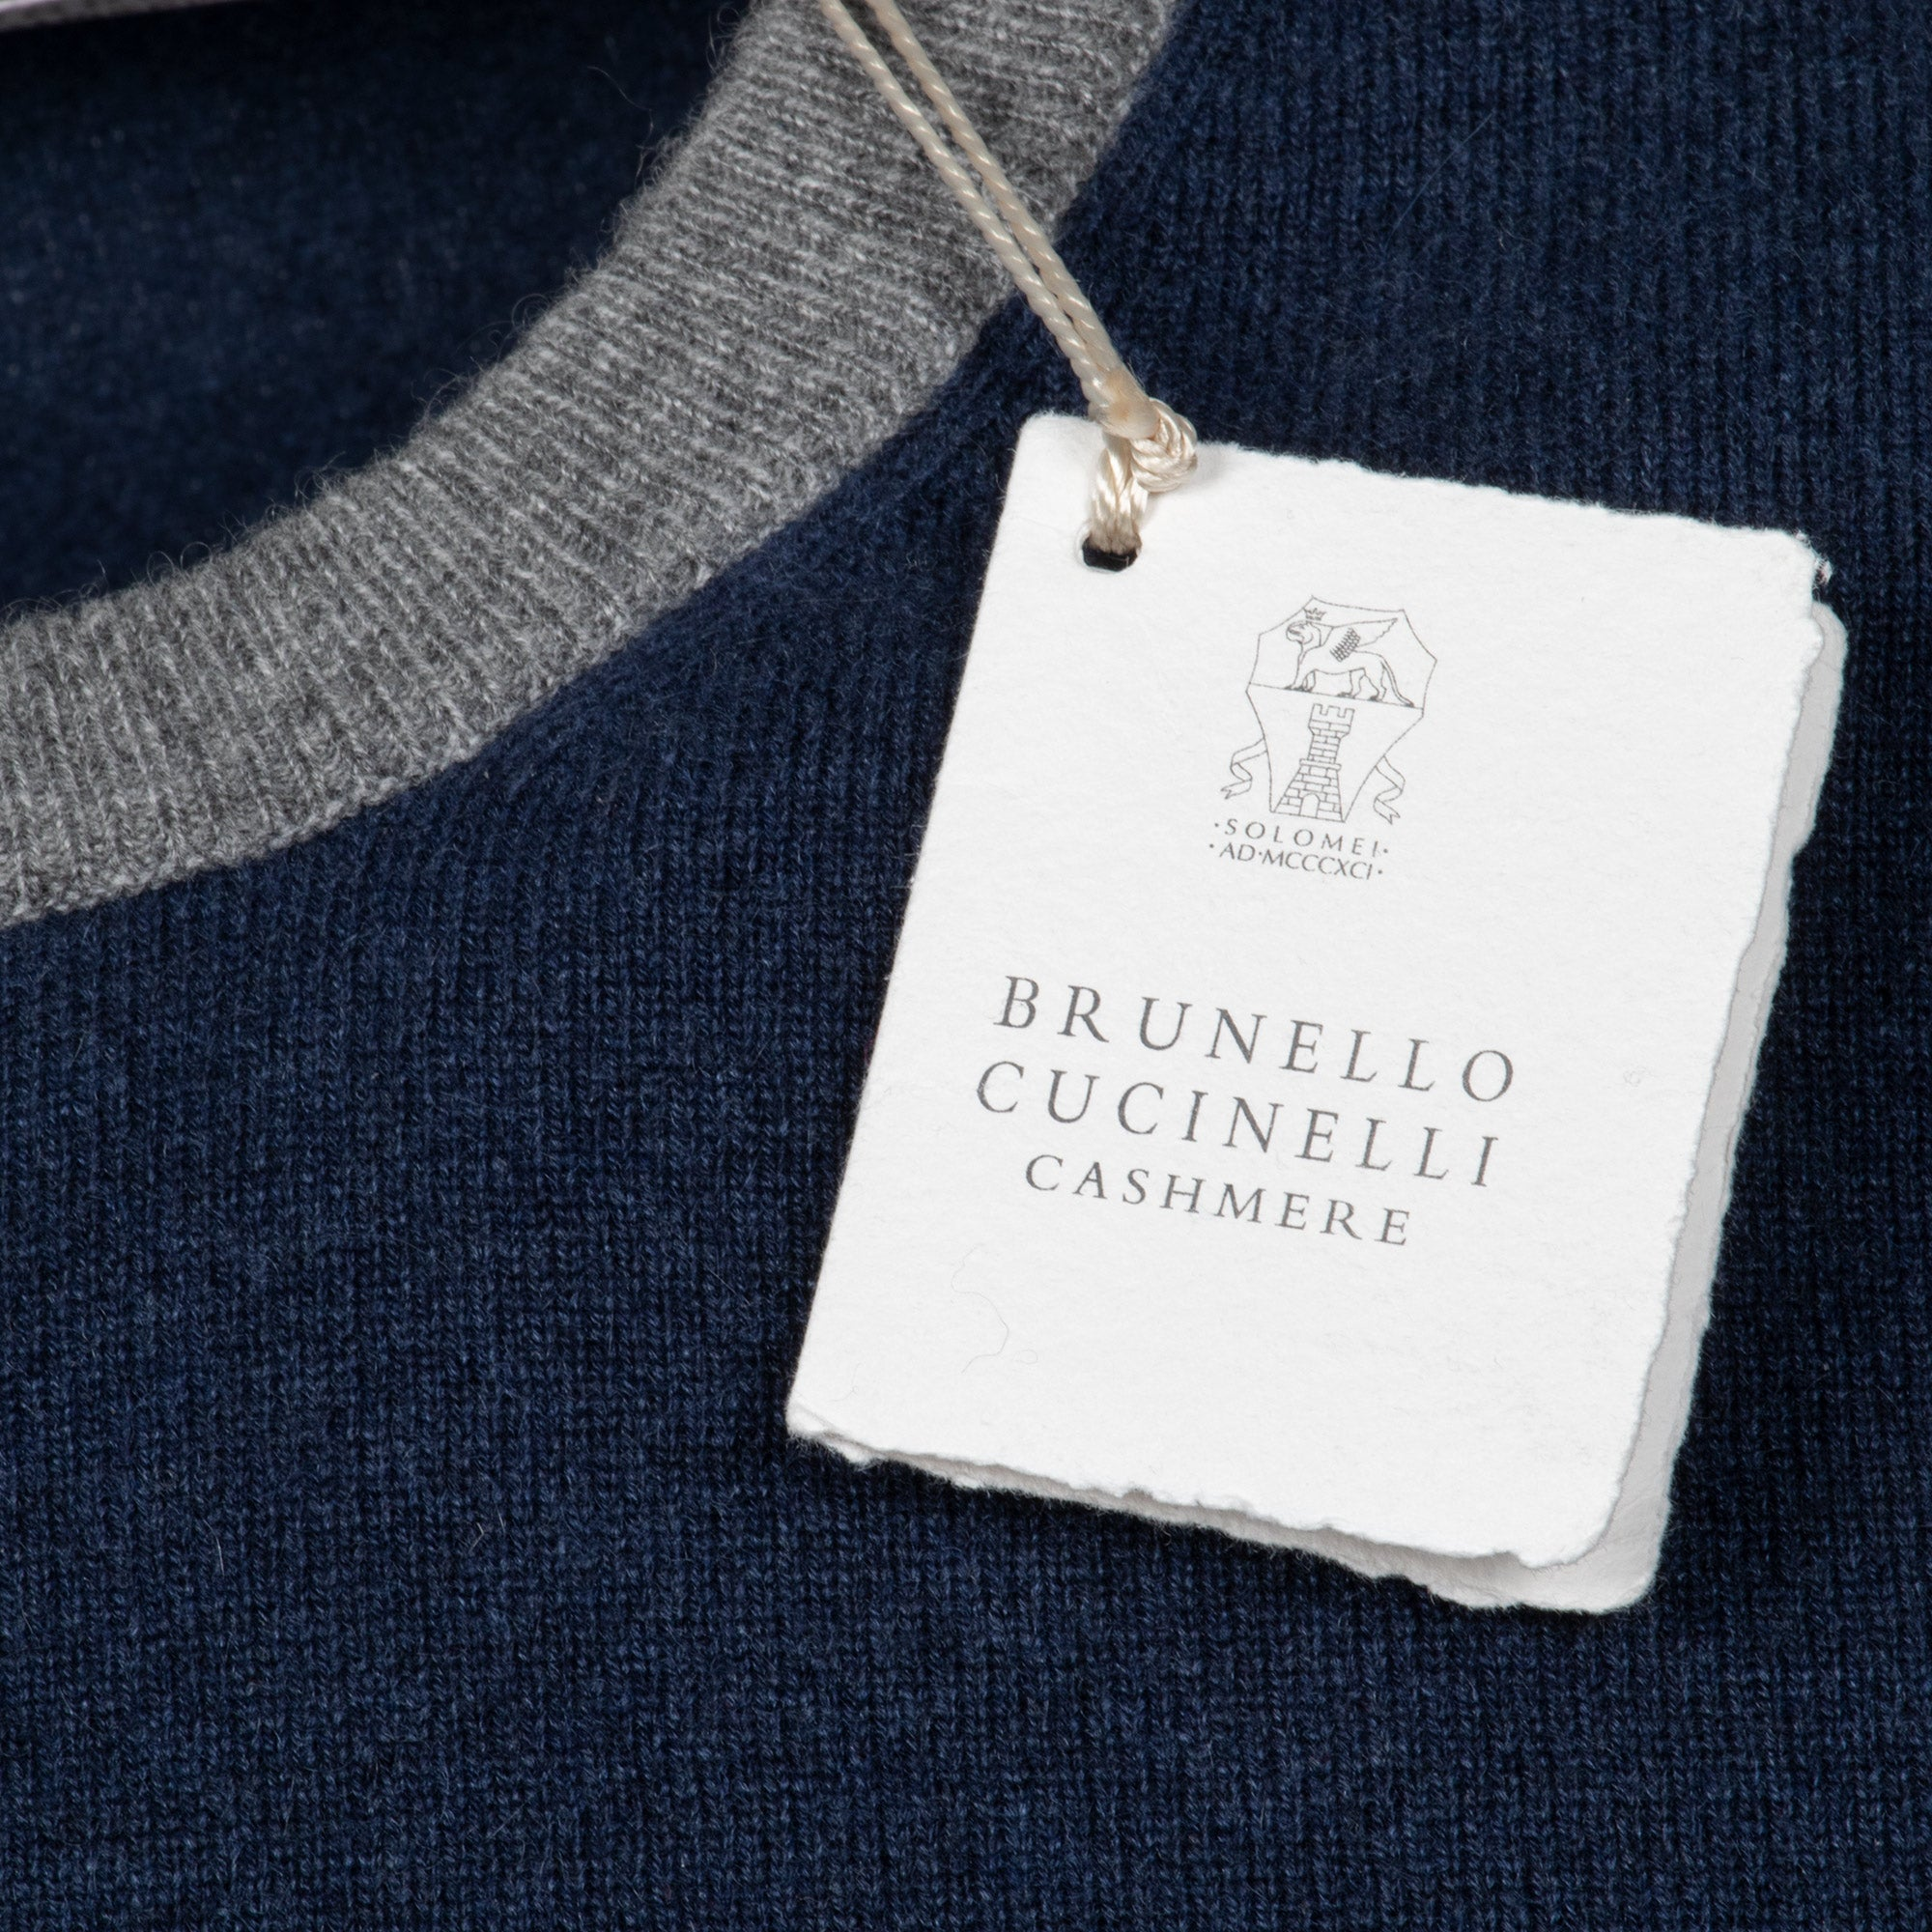 Brunello Cucinelli Crewneck Cashmere Sweater in Navy